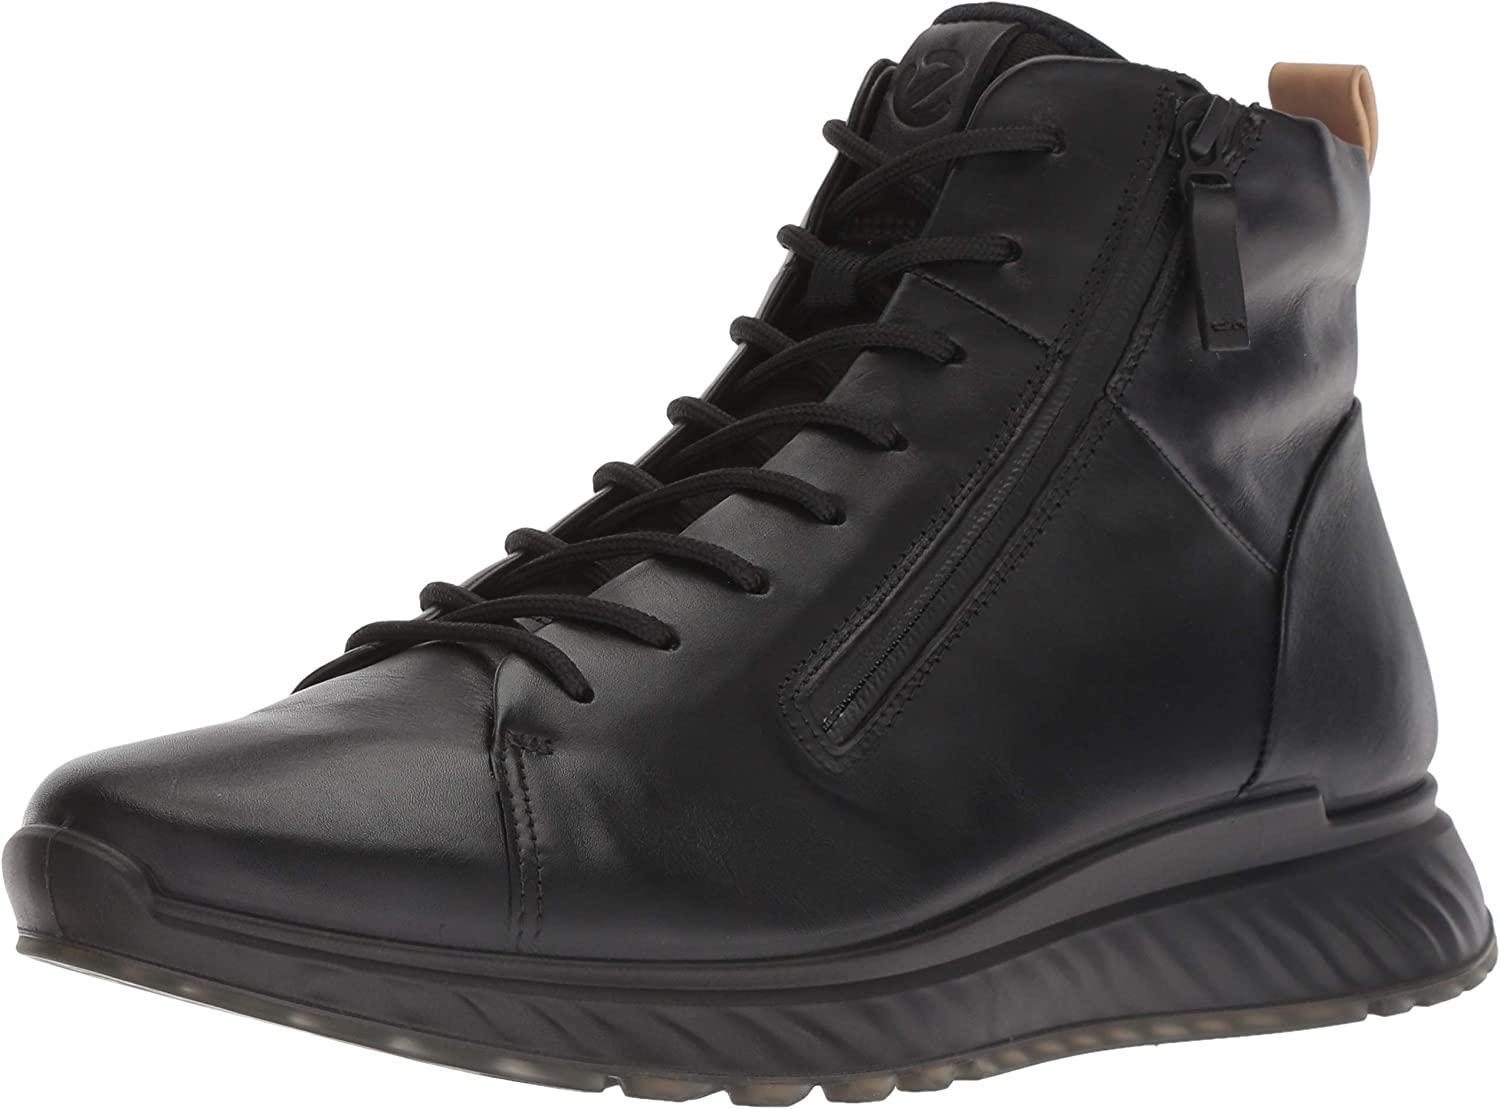 ECCO Men's St1 High Top Sneaker